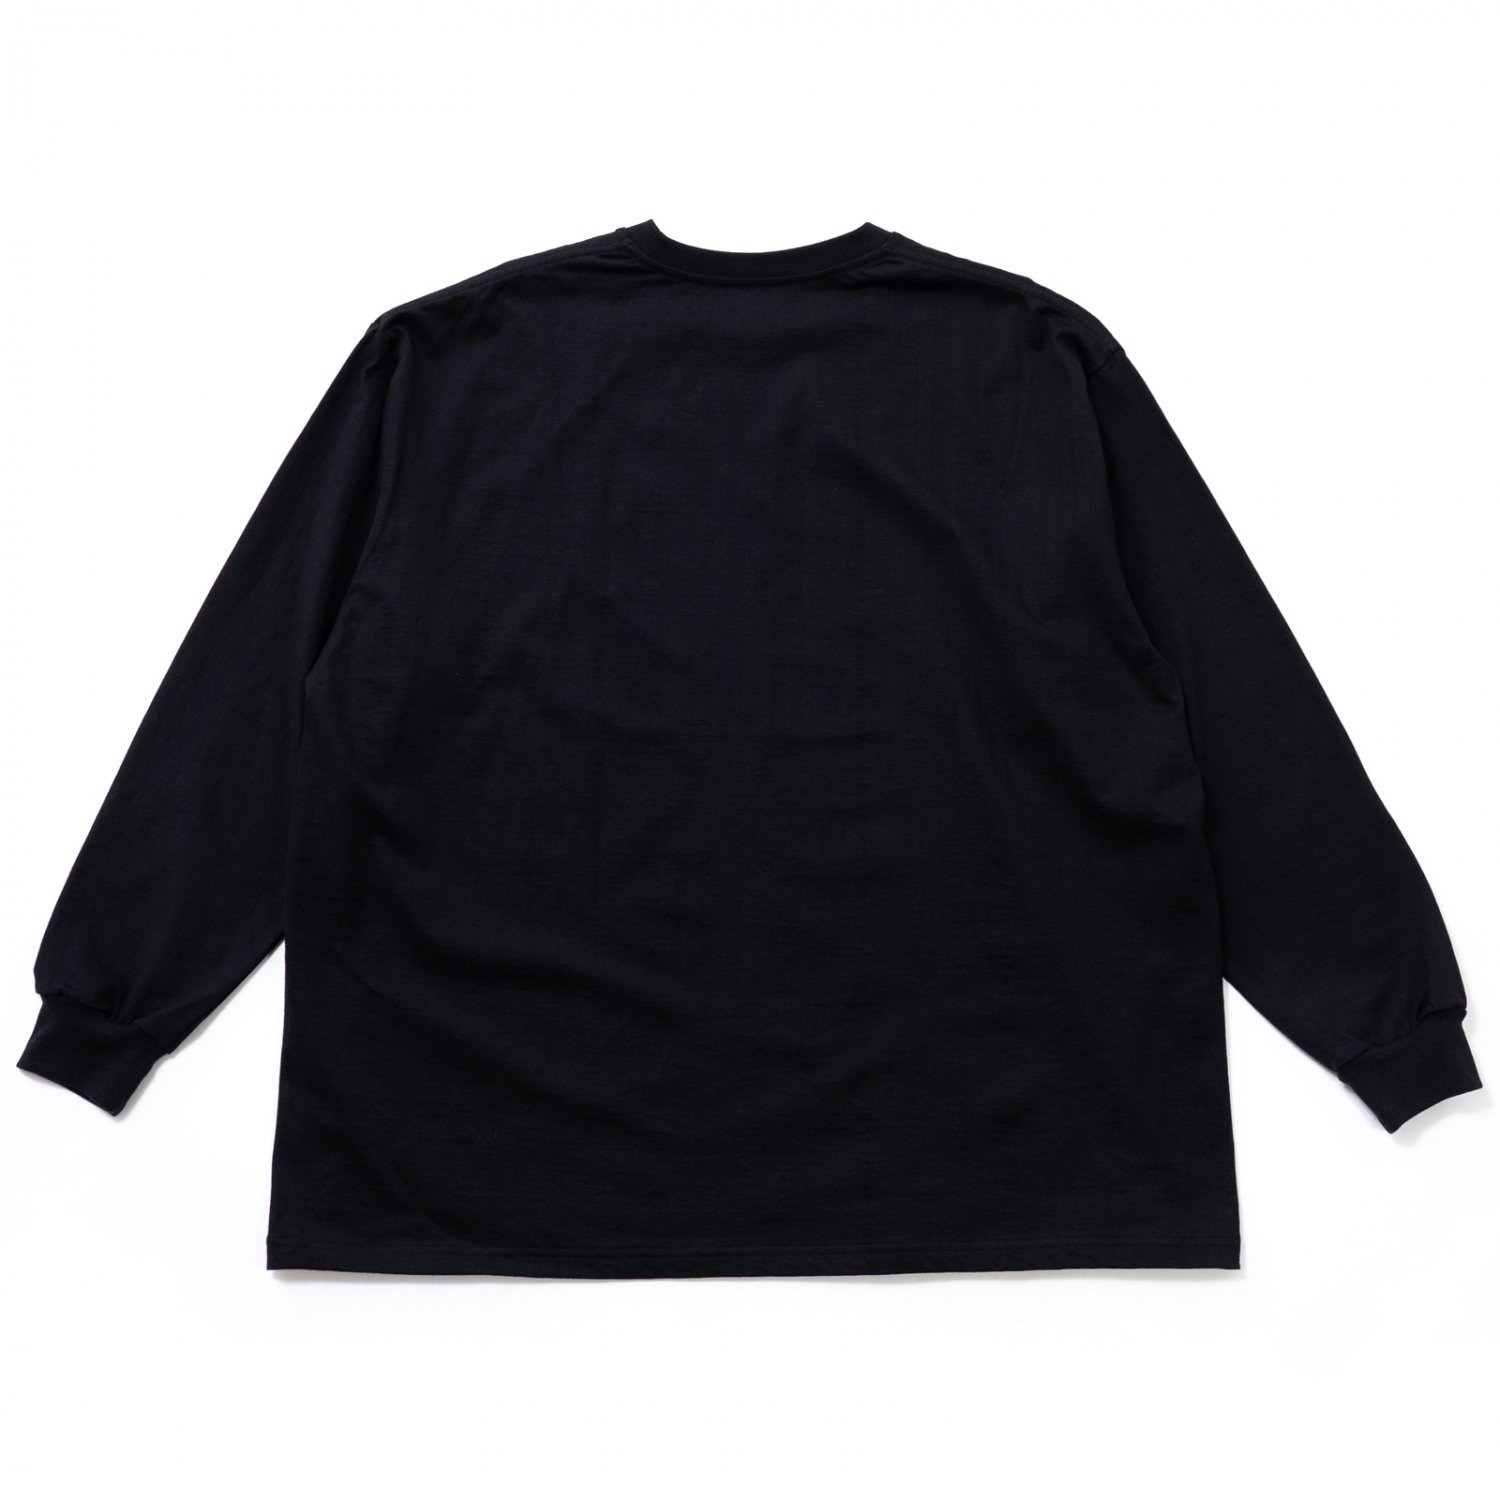 Graphpaper * L/S Oversized Tee * Black